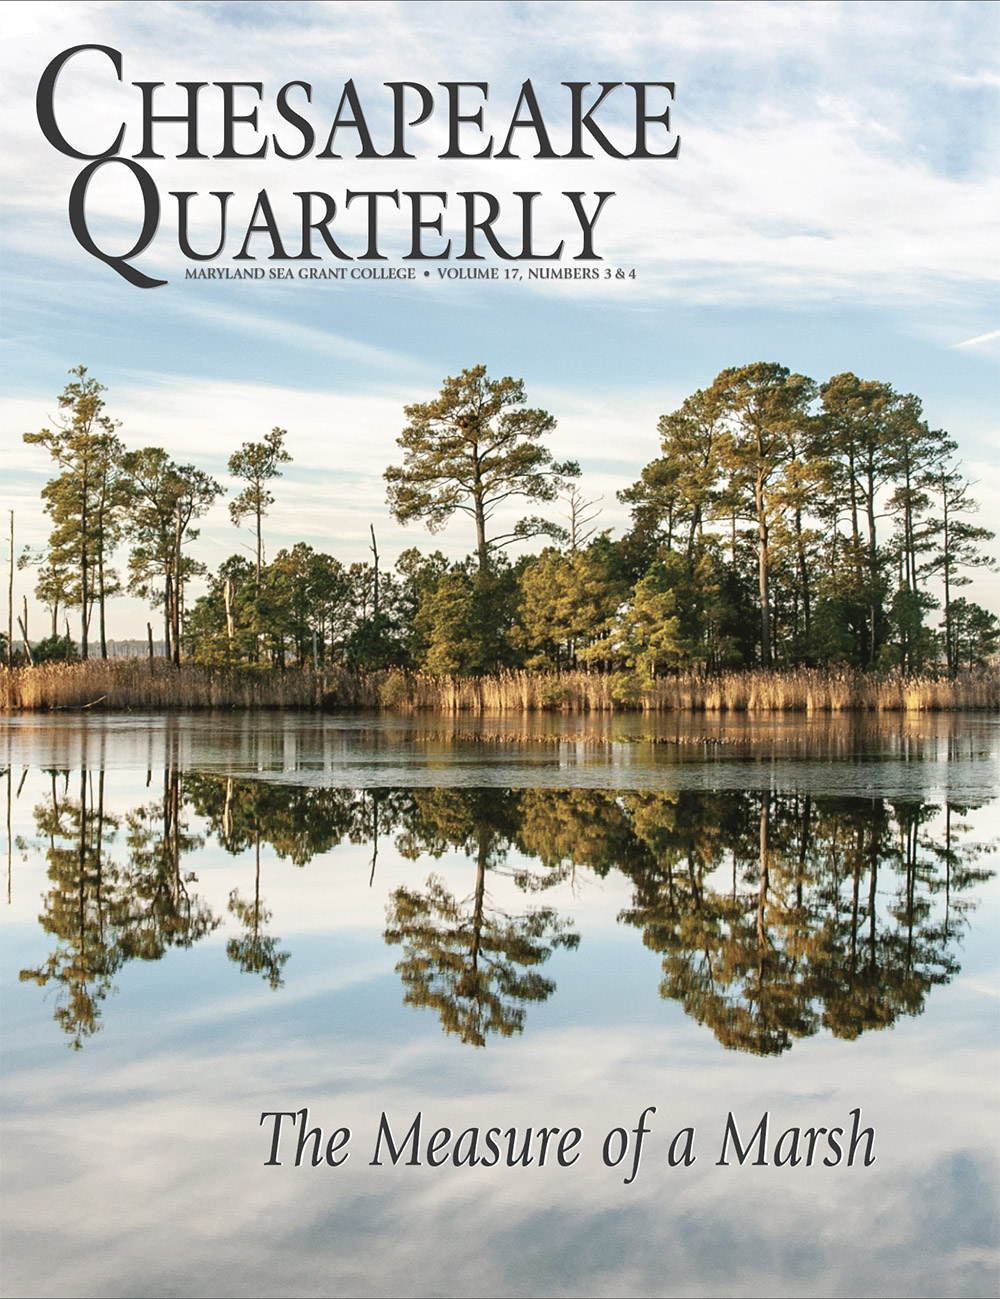 Volume 17, Numbers 3 & 4 : The Measure of a Marsh